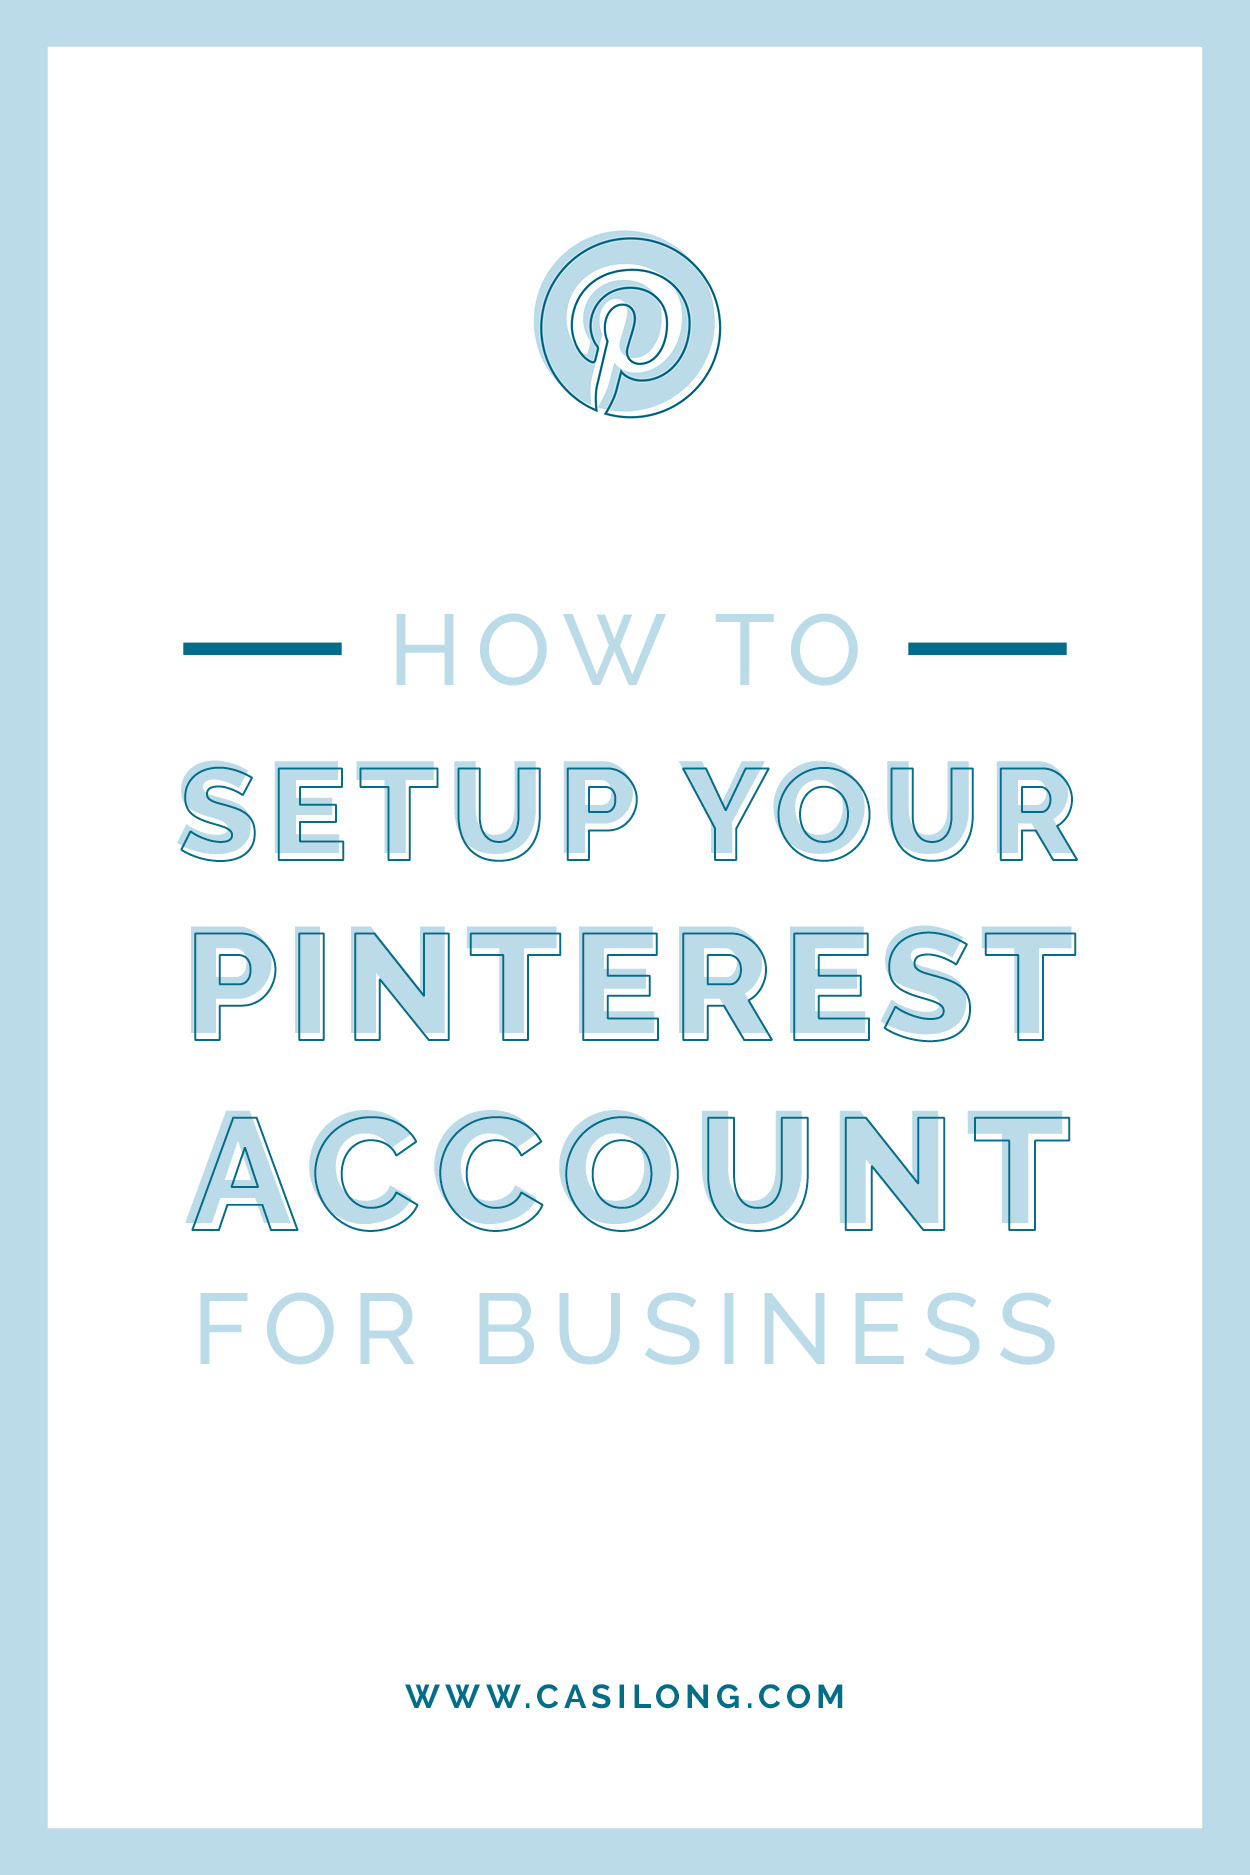 How to Setup your Business Account for Business | casilong.com/blog #casilongdesign